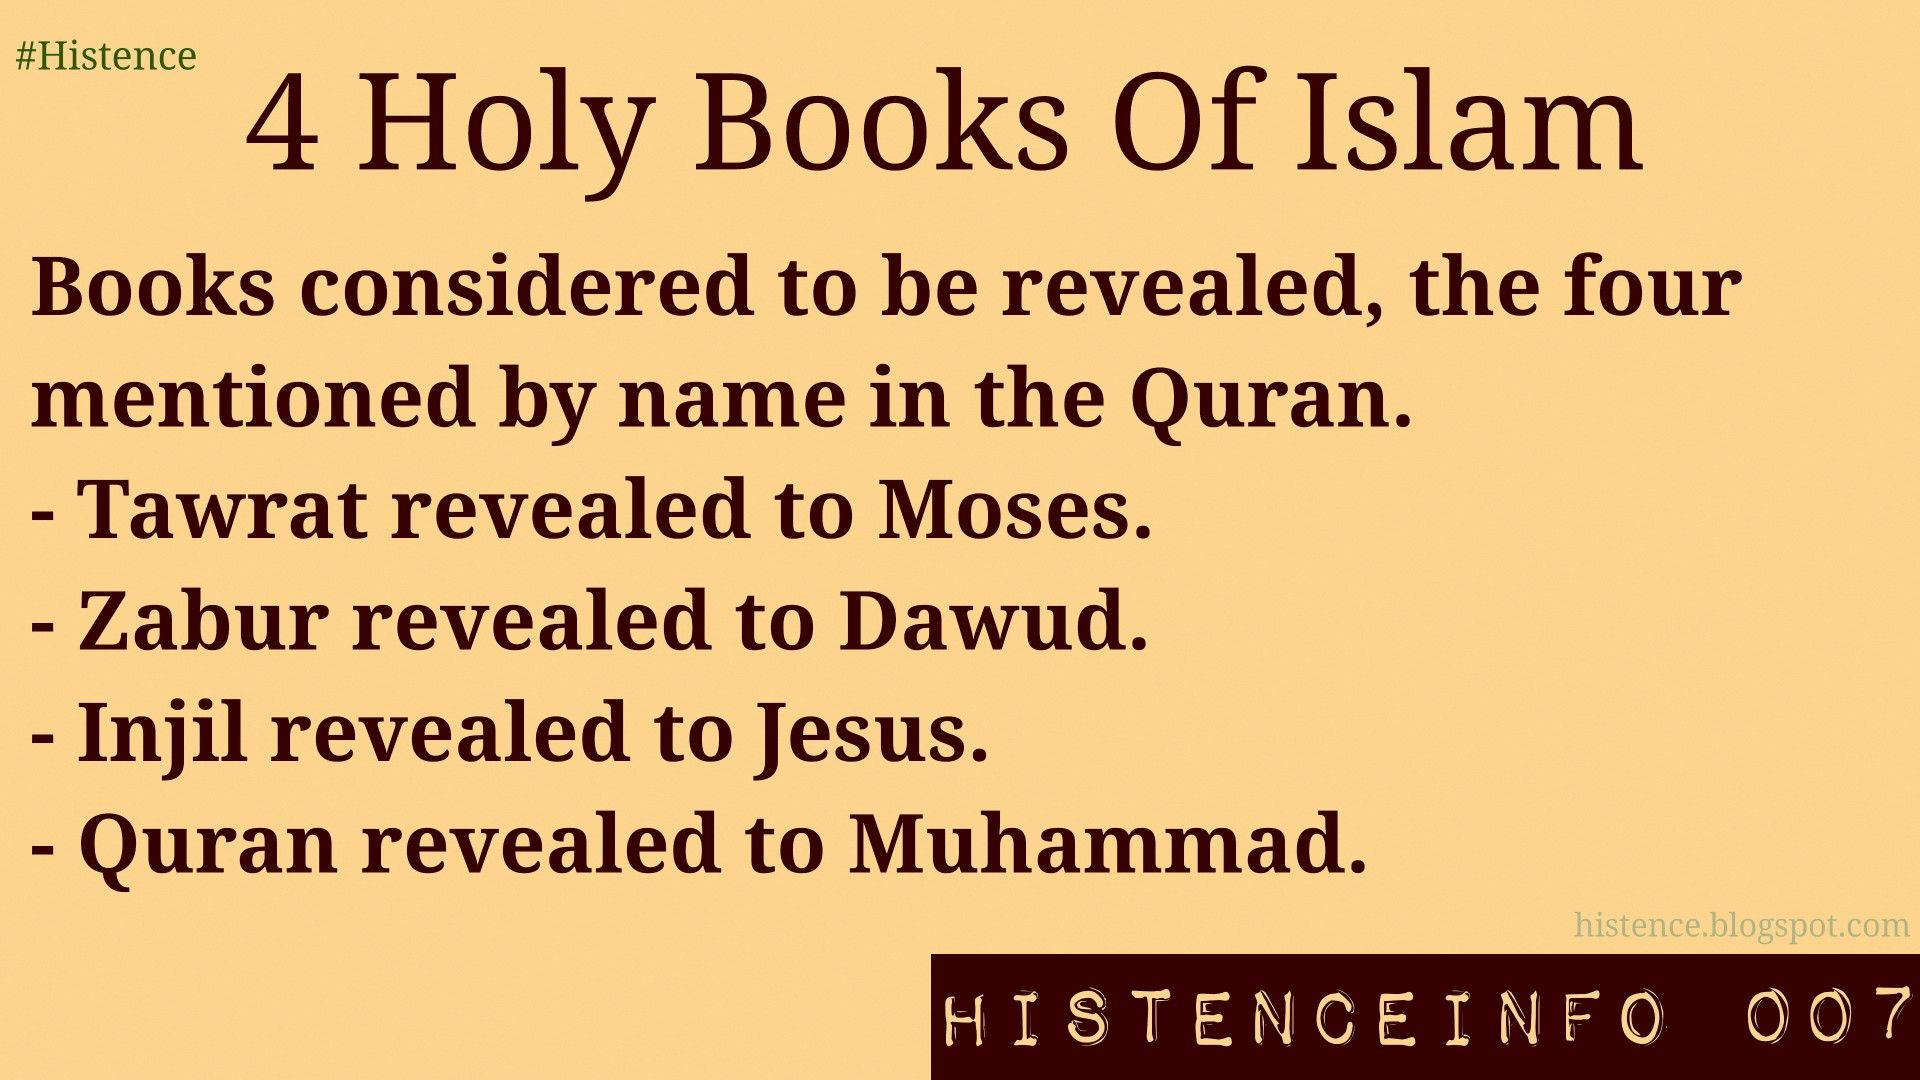 the holy book of islam essay The five pillars can be found within the qur'an which is islam's holy book  we will write a custom essay sample on five pillars of islam specifically for you.